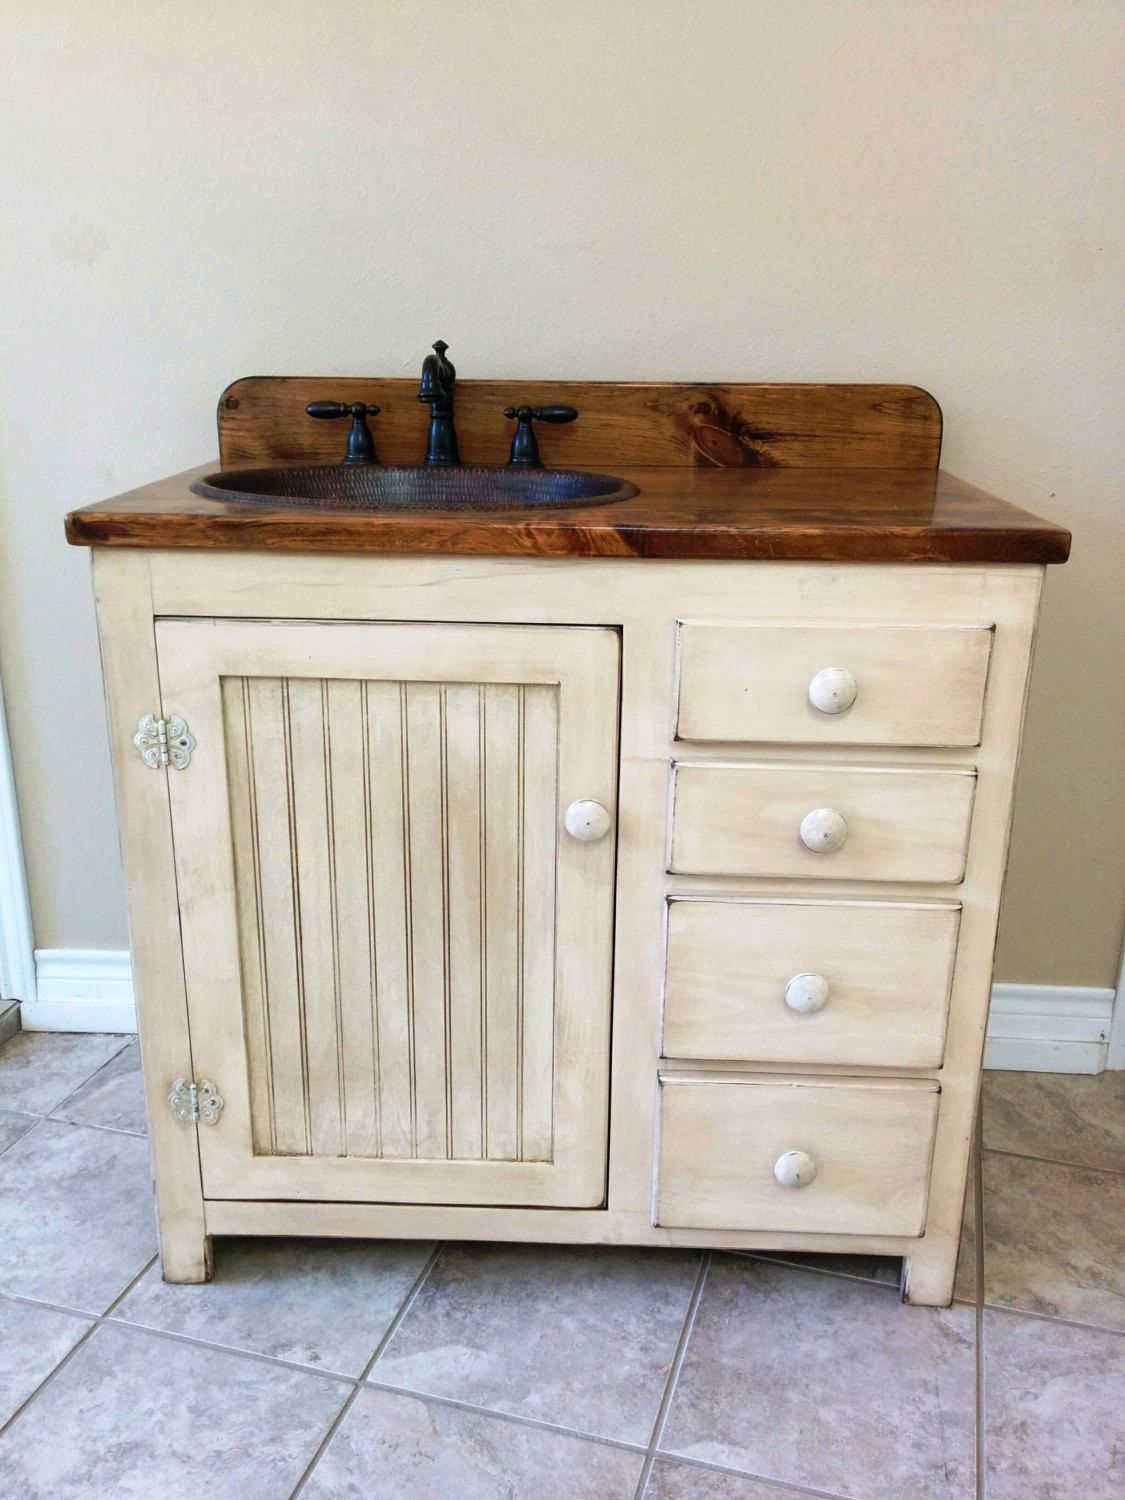 Bathroom Vanity 36 Rustic Farmhouse Bathroom Vanity Fh1297 36l Bathroom Vanity W Drawers Rustic Bathroom Vanity Copper Sink Diy Sink Vanity Rustic Bathroom Vanities Diy Bathroom Vanity